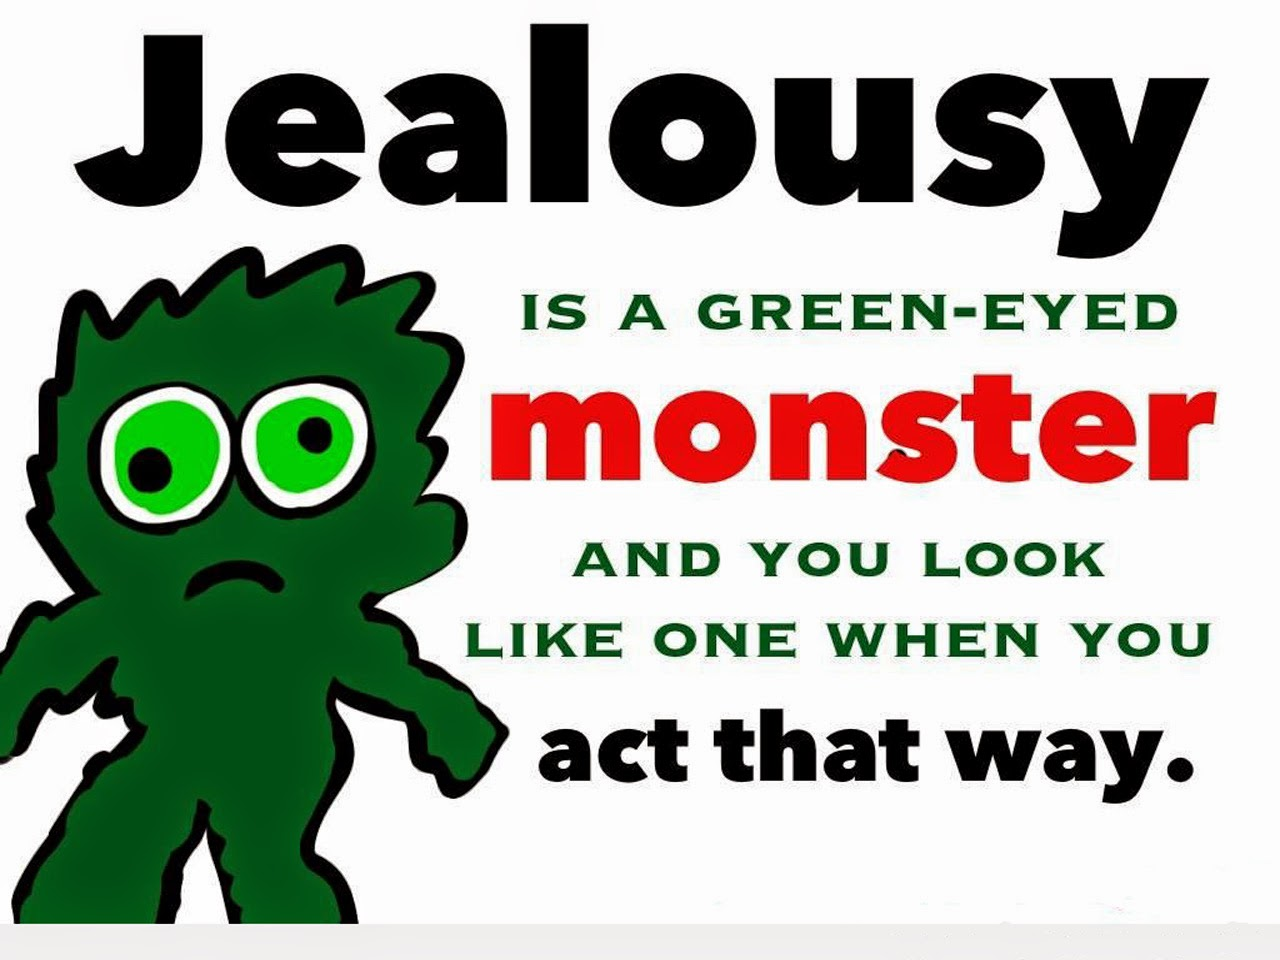 Quotes About Jealous People Jealousy Quotes And Saying Between Friends  Poetry Likers